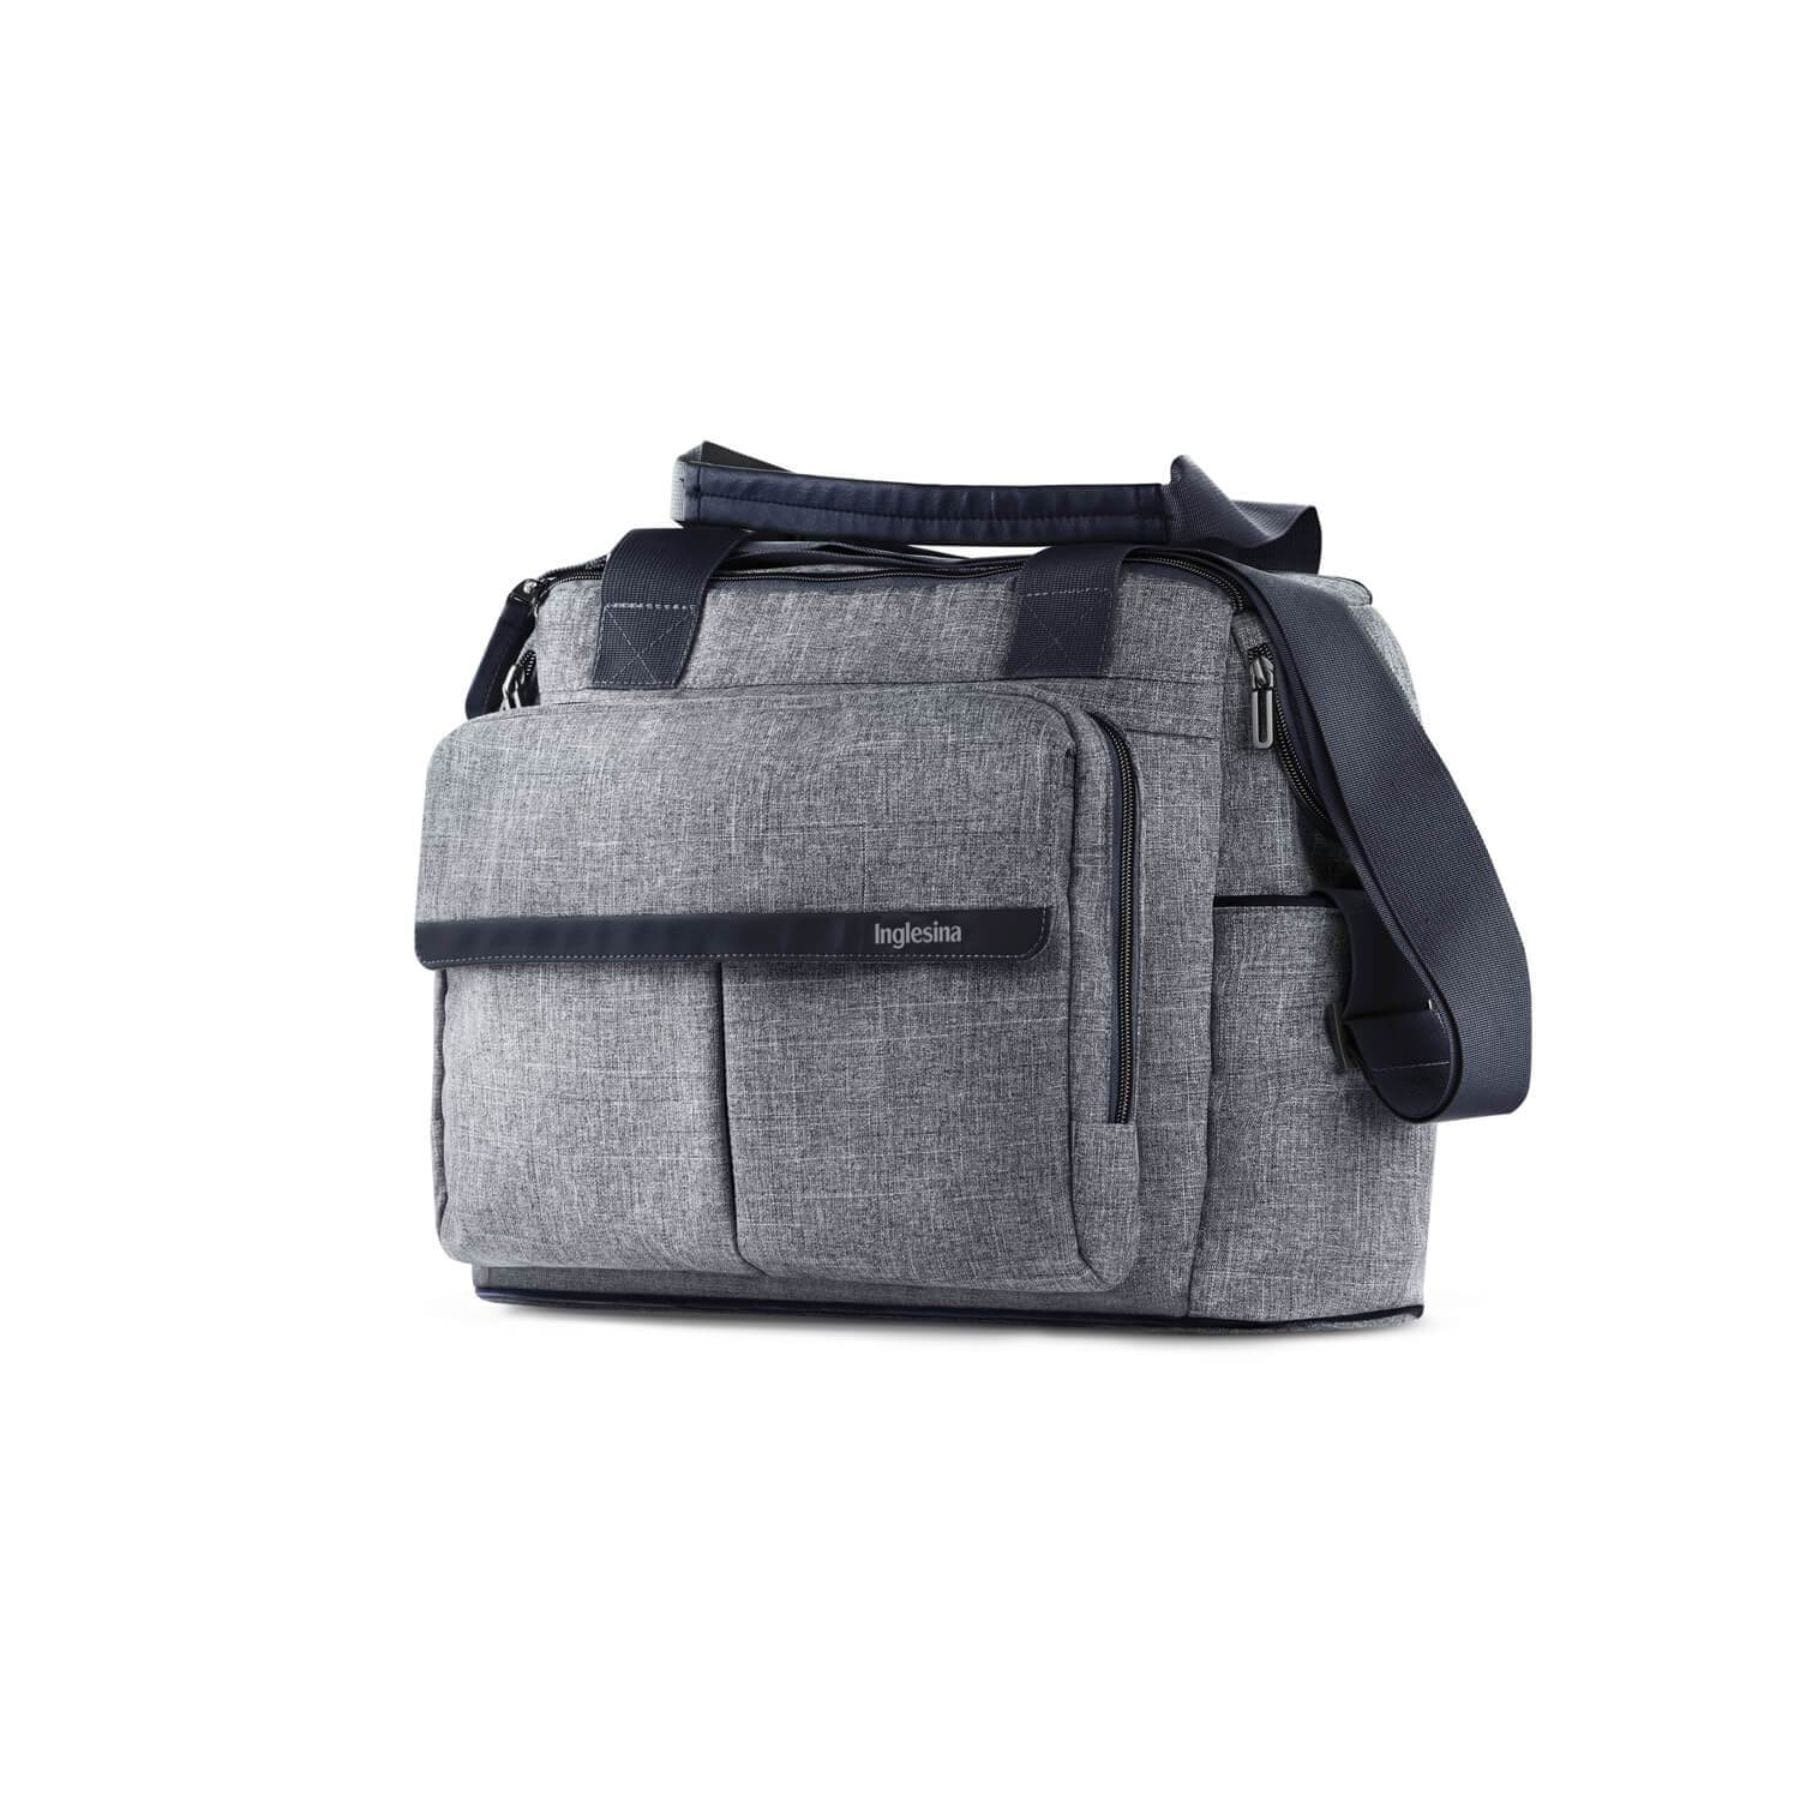 Inglesina Dual Bag for Aptica - Niagara Blue